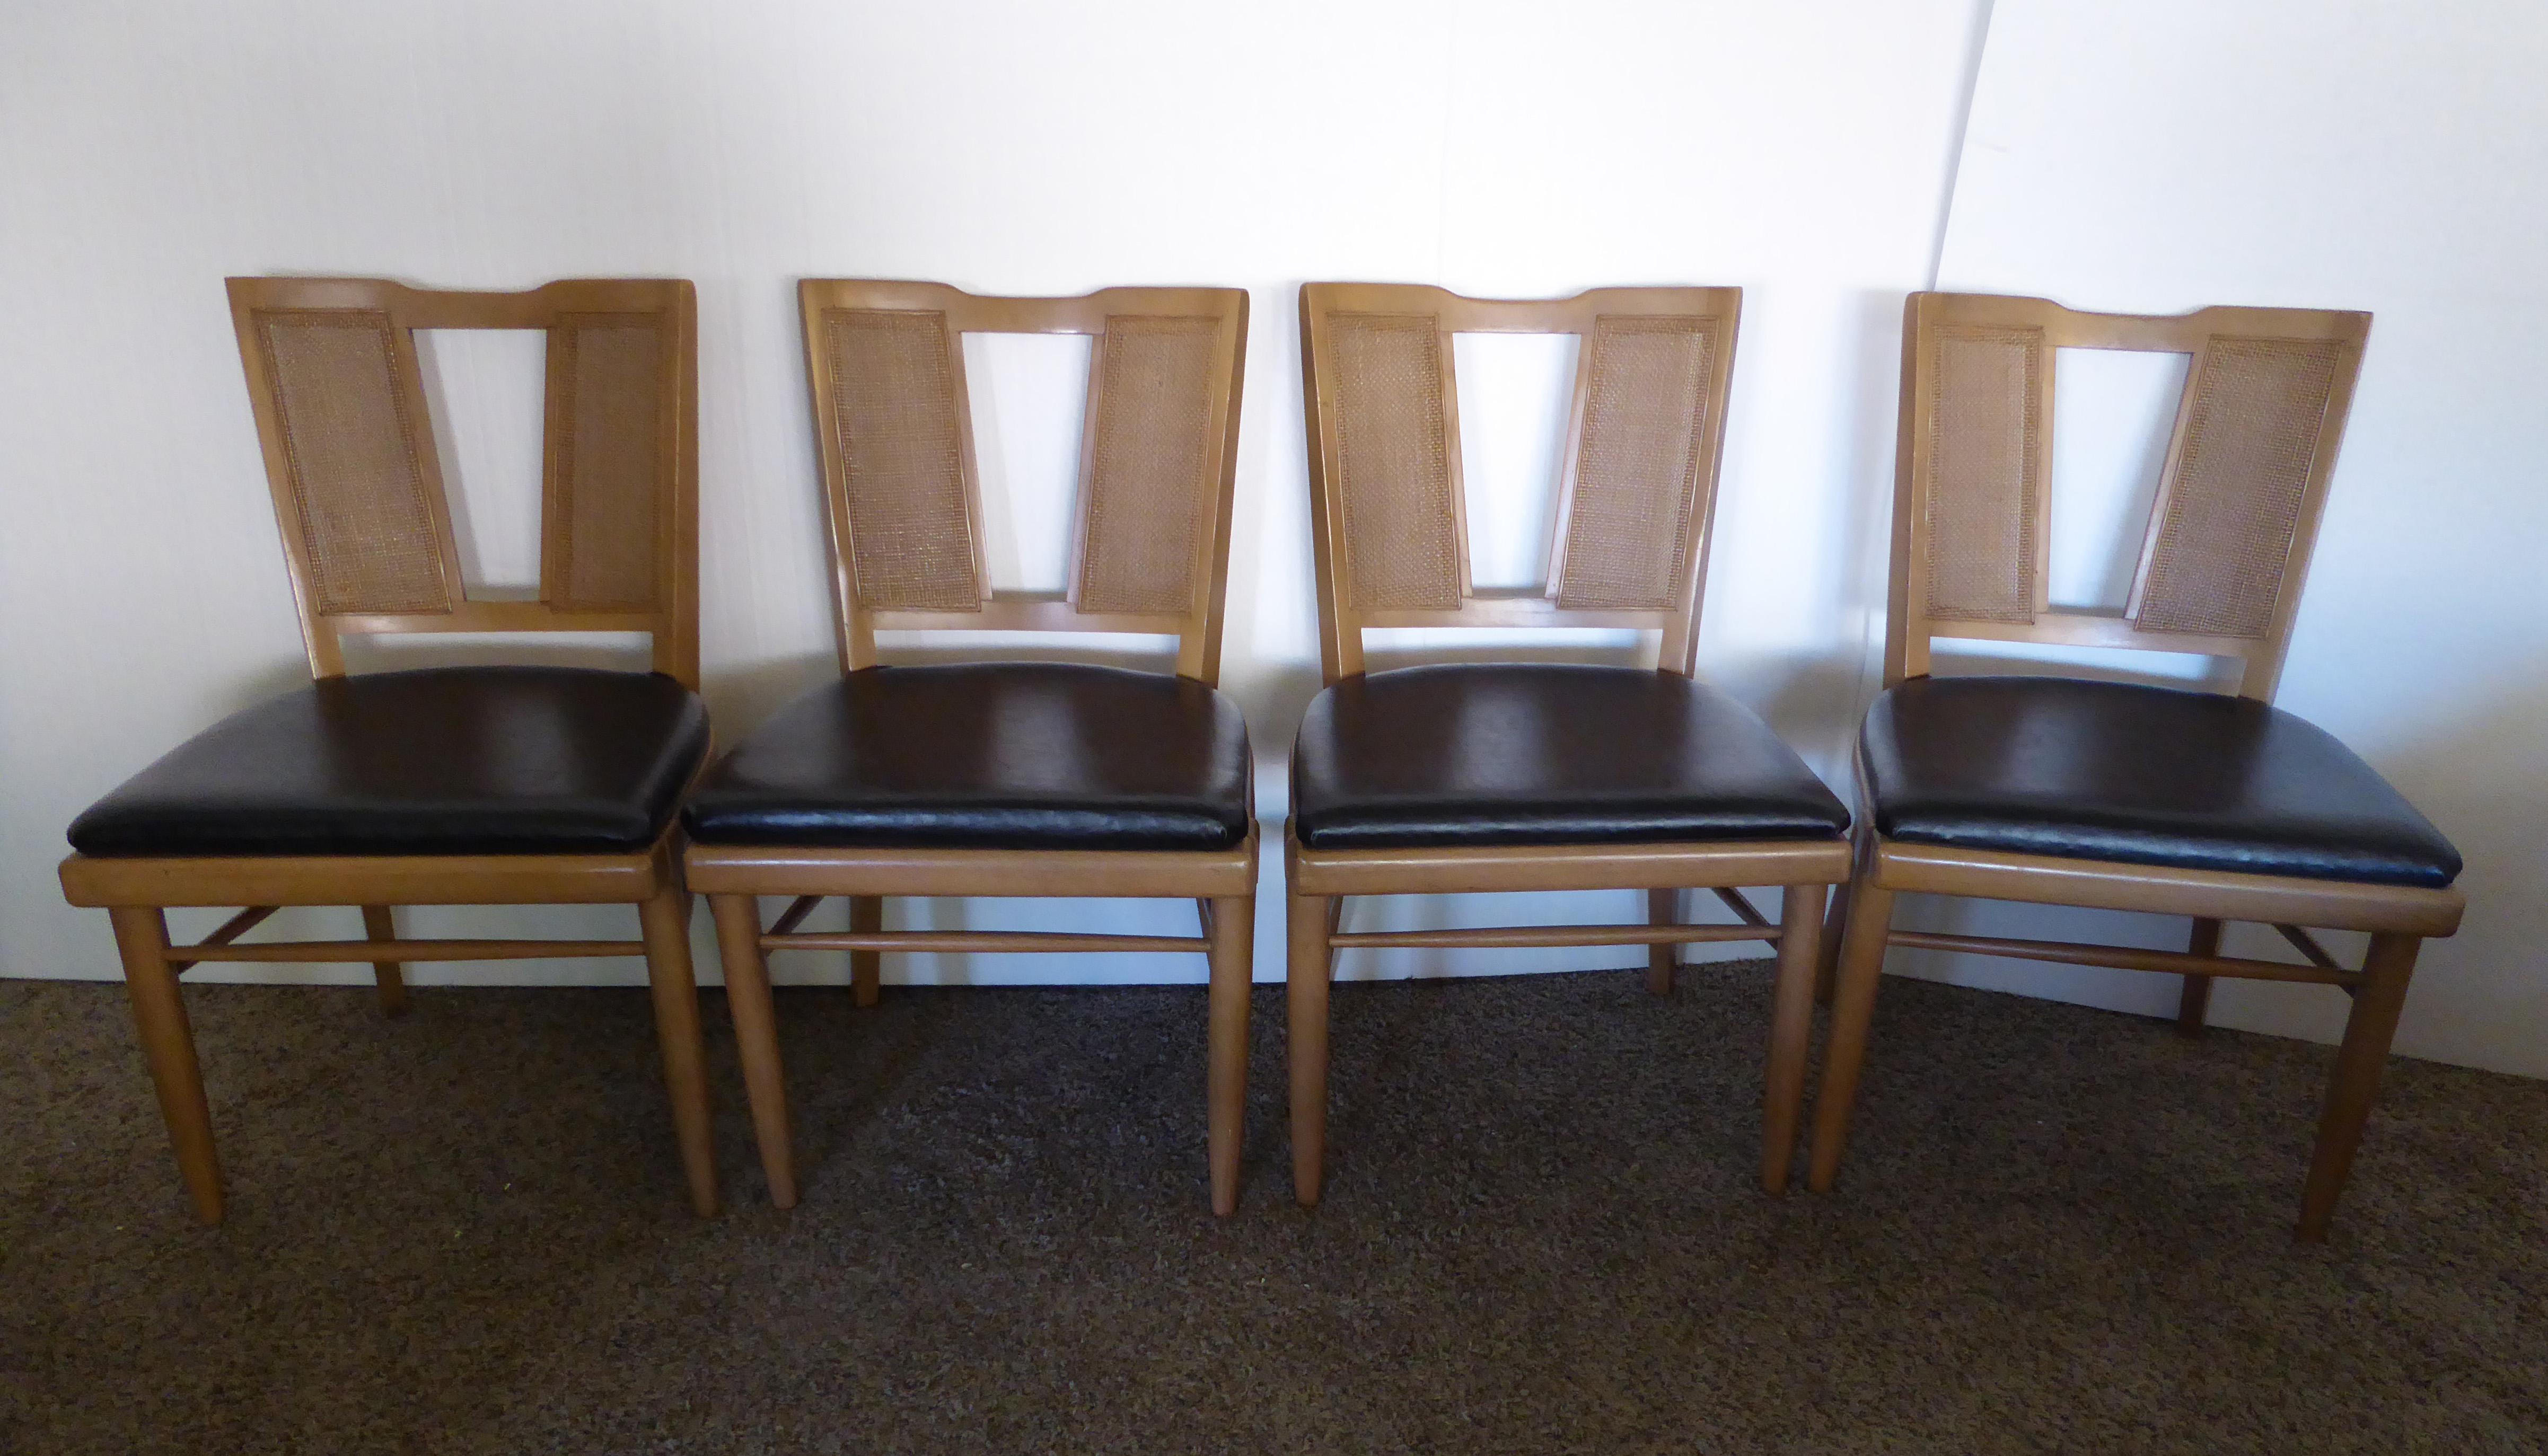 Vintage Danish Modern Style Cane Back Dining Chairs By American Furniture  Co.   Set Of